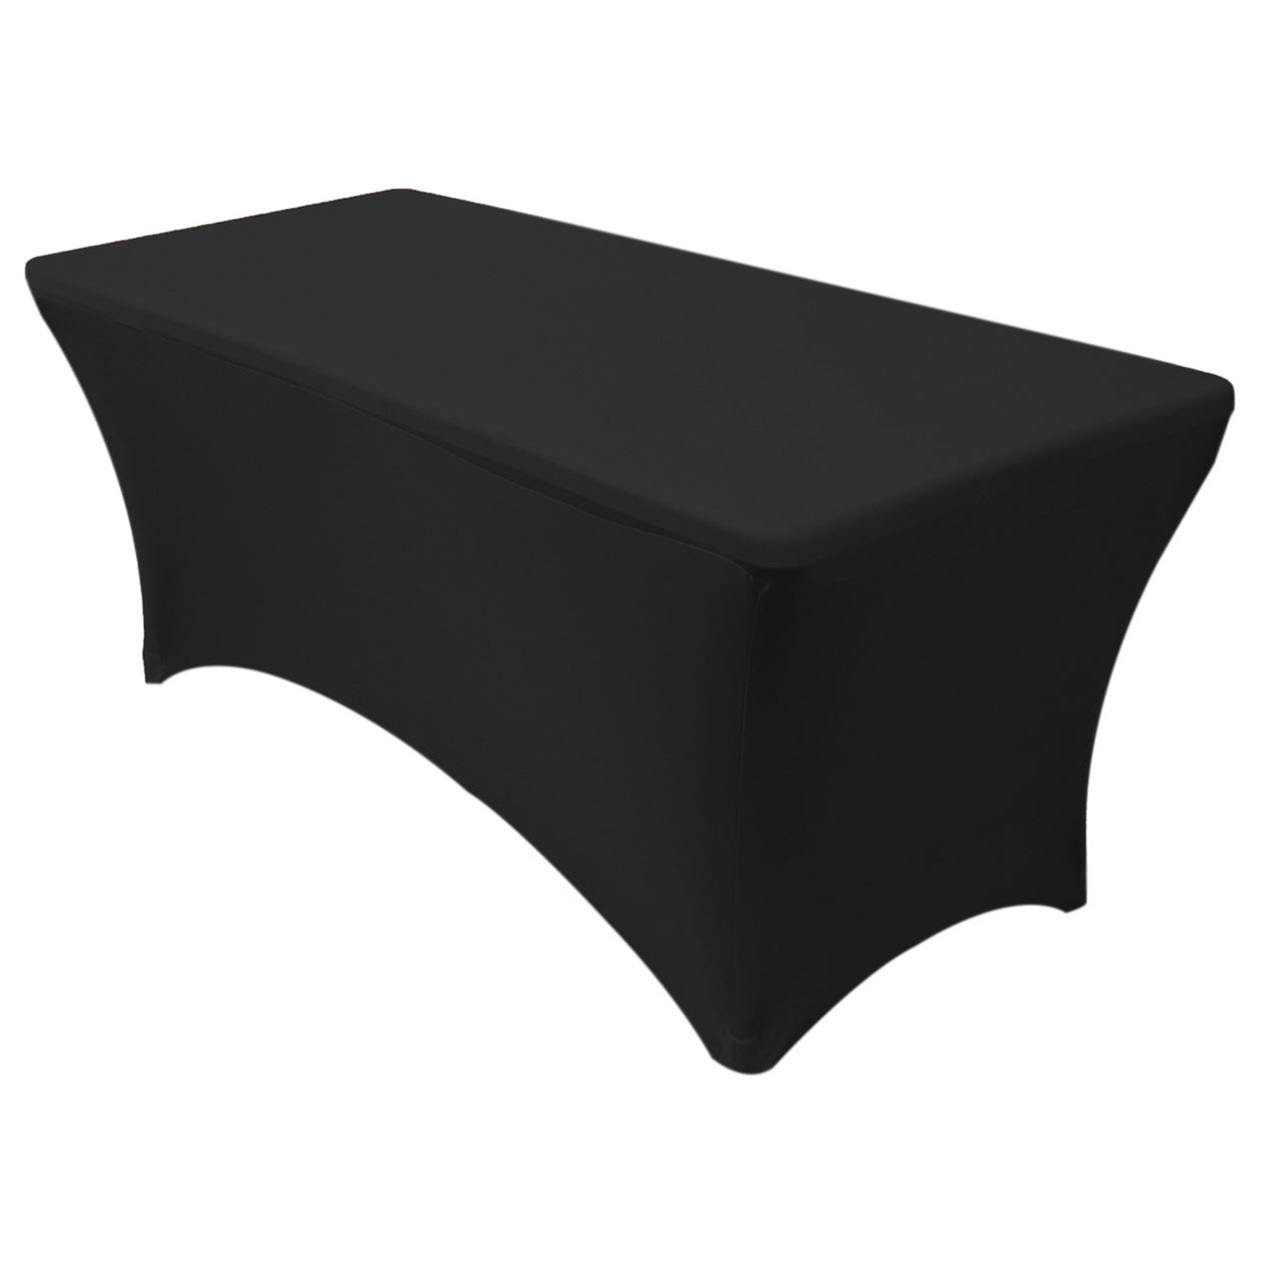 Stretch Spandex 6 Ft Rectangular Table Cover Black Your Chair Covers Inc